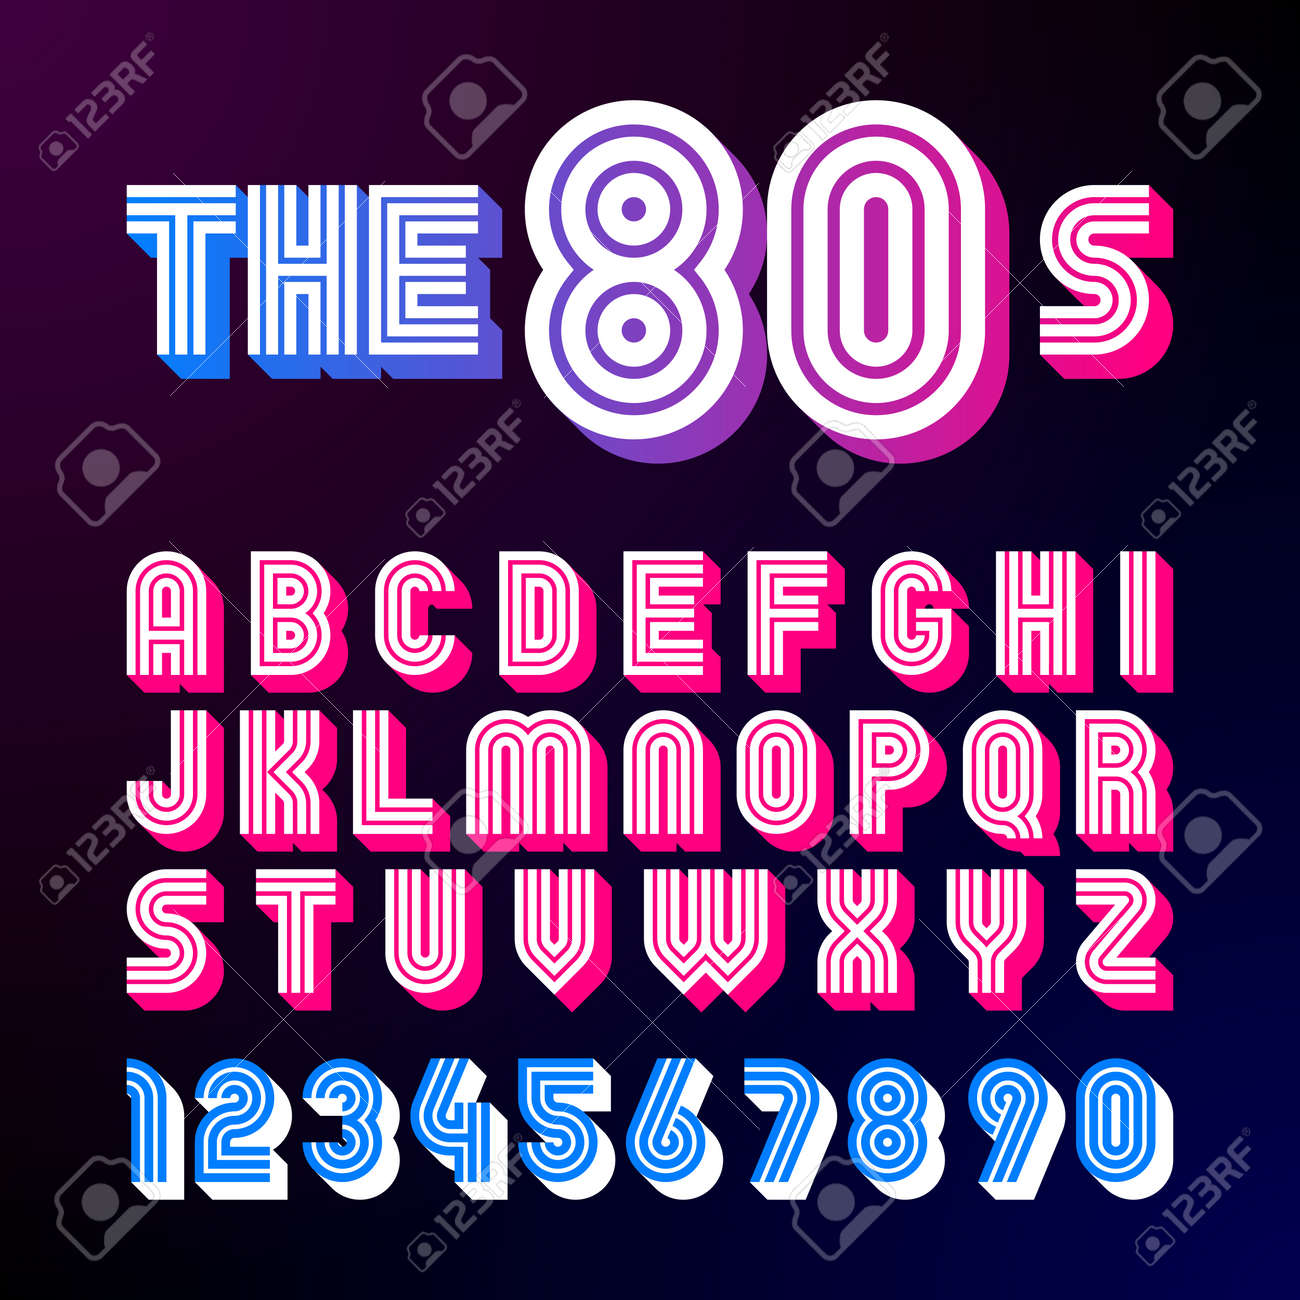 Eighties Style Retro Font 80s Design With Shadow Disco Alphabet And